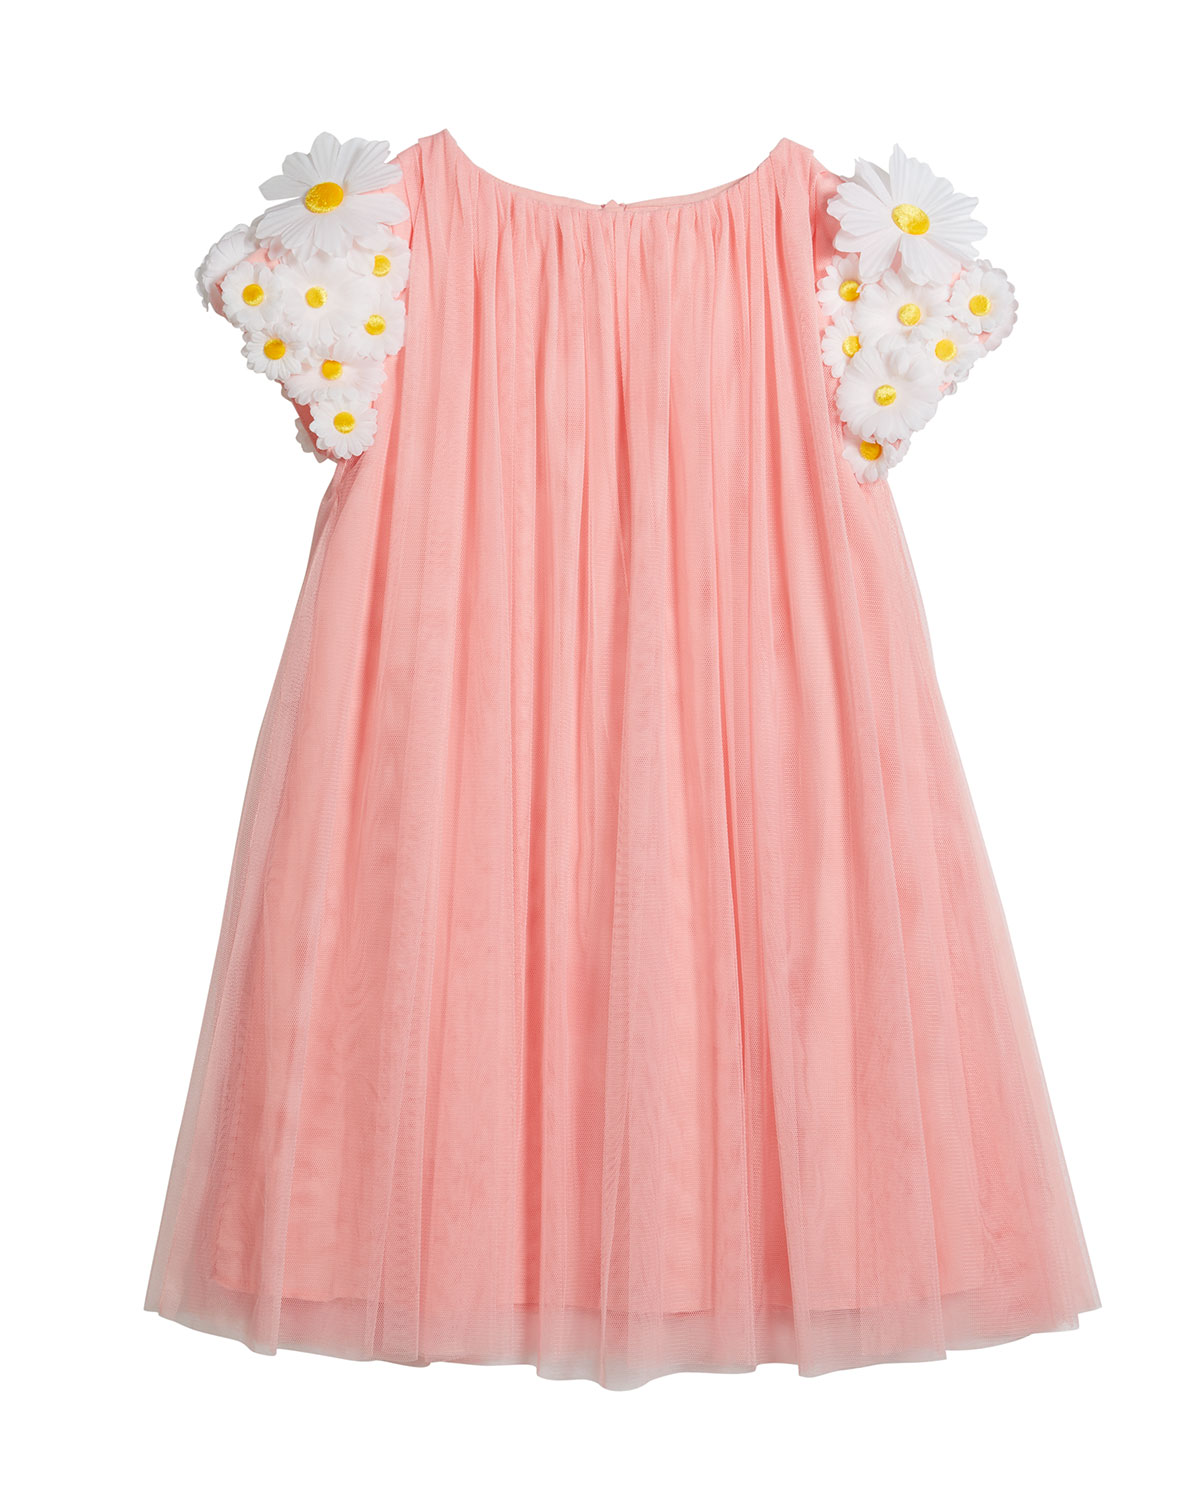 Charabia Girl's Tulle 3D Butterfly Dress, Size 6-12